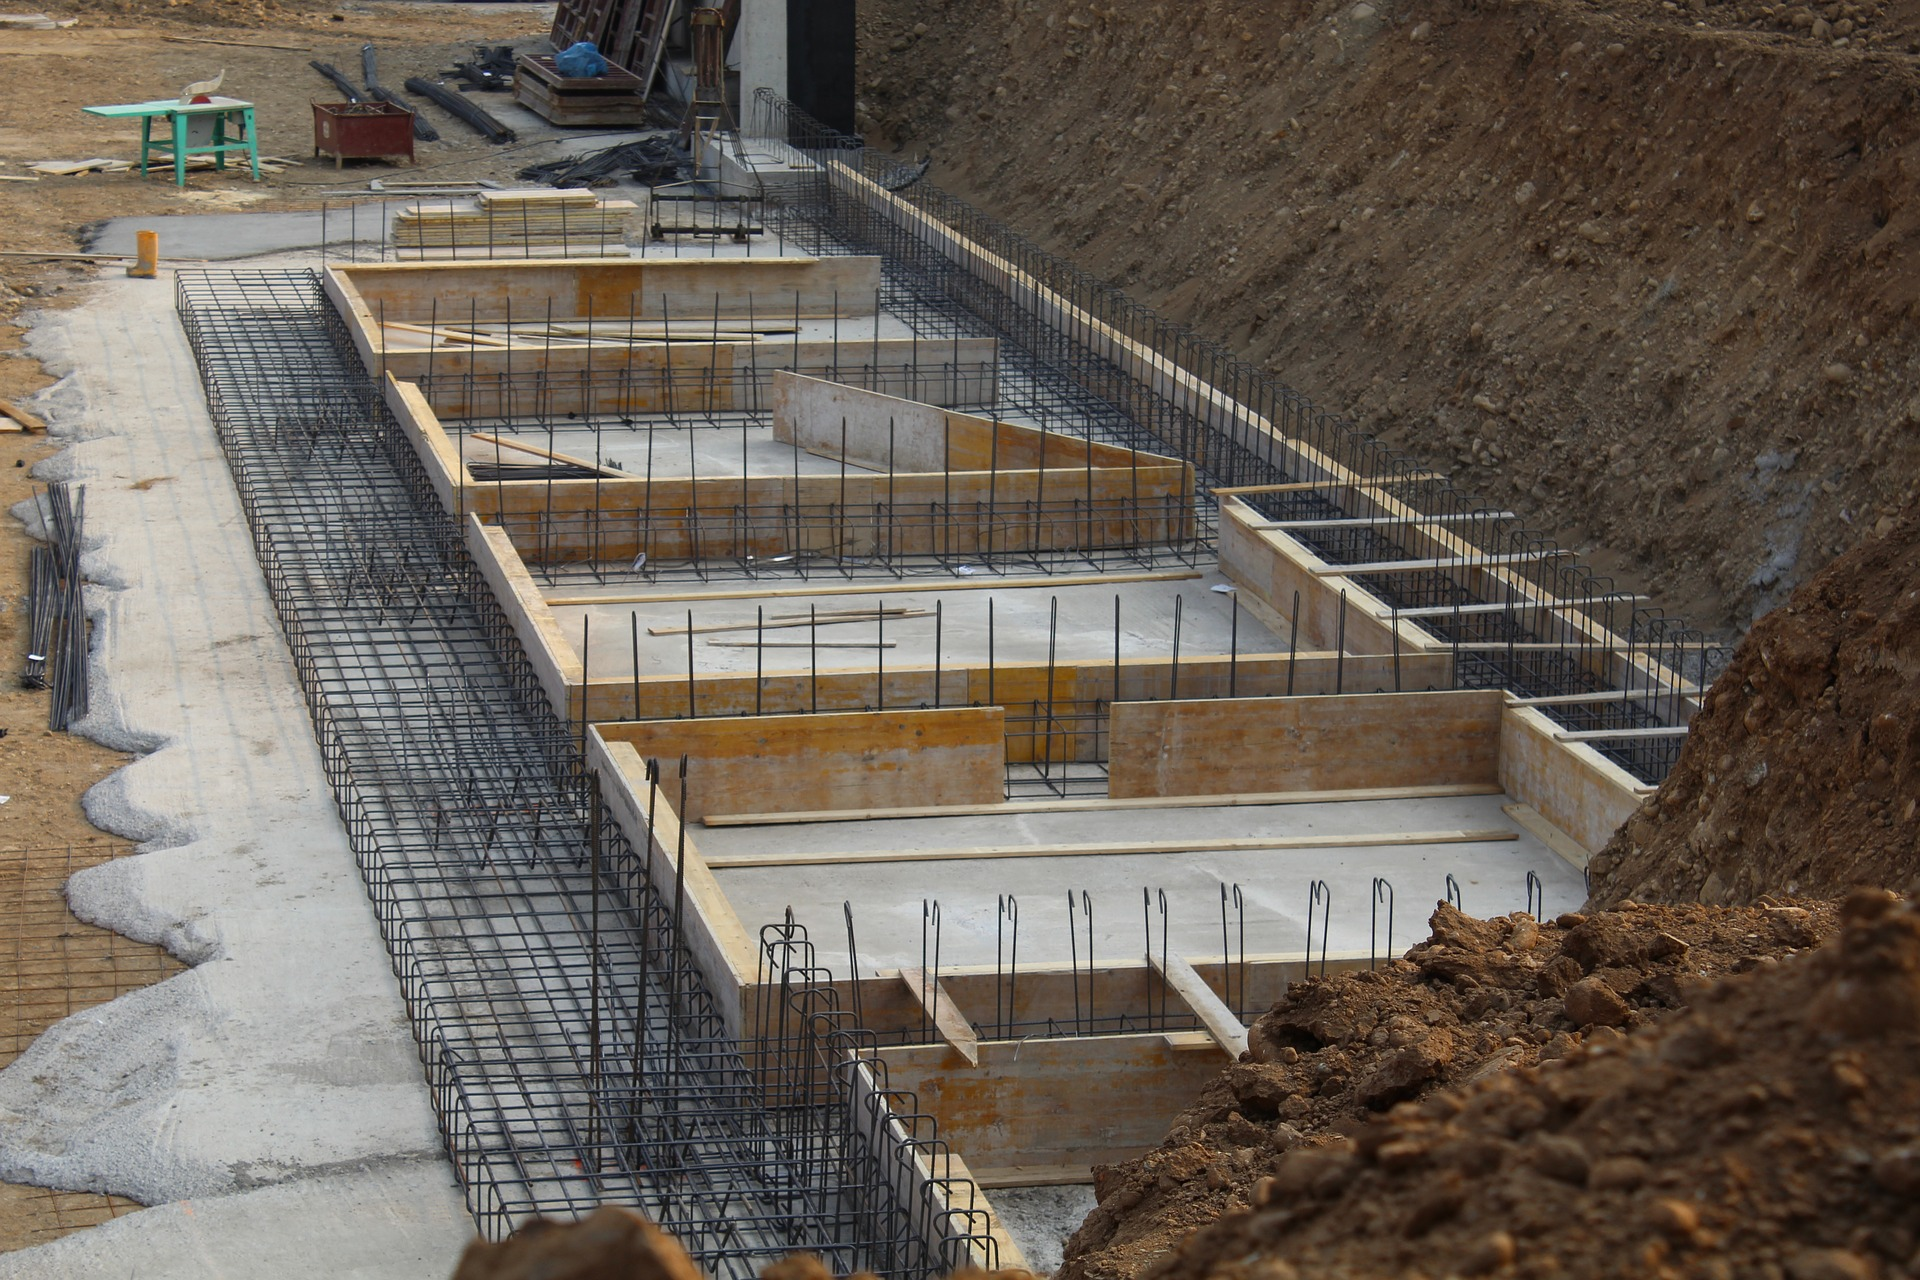 Concrete beam design over the foundations of a building